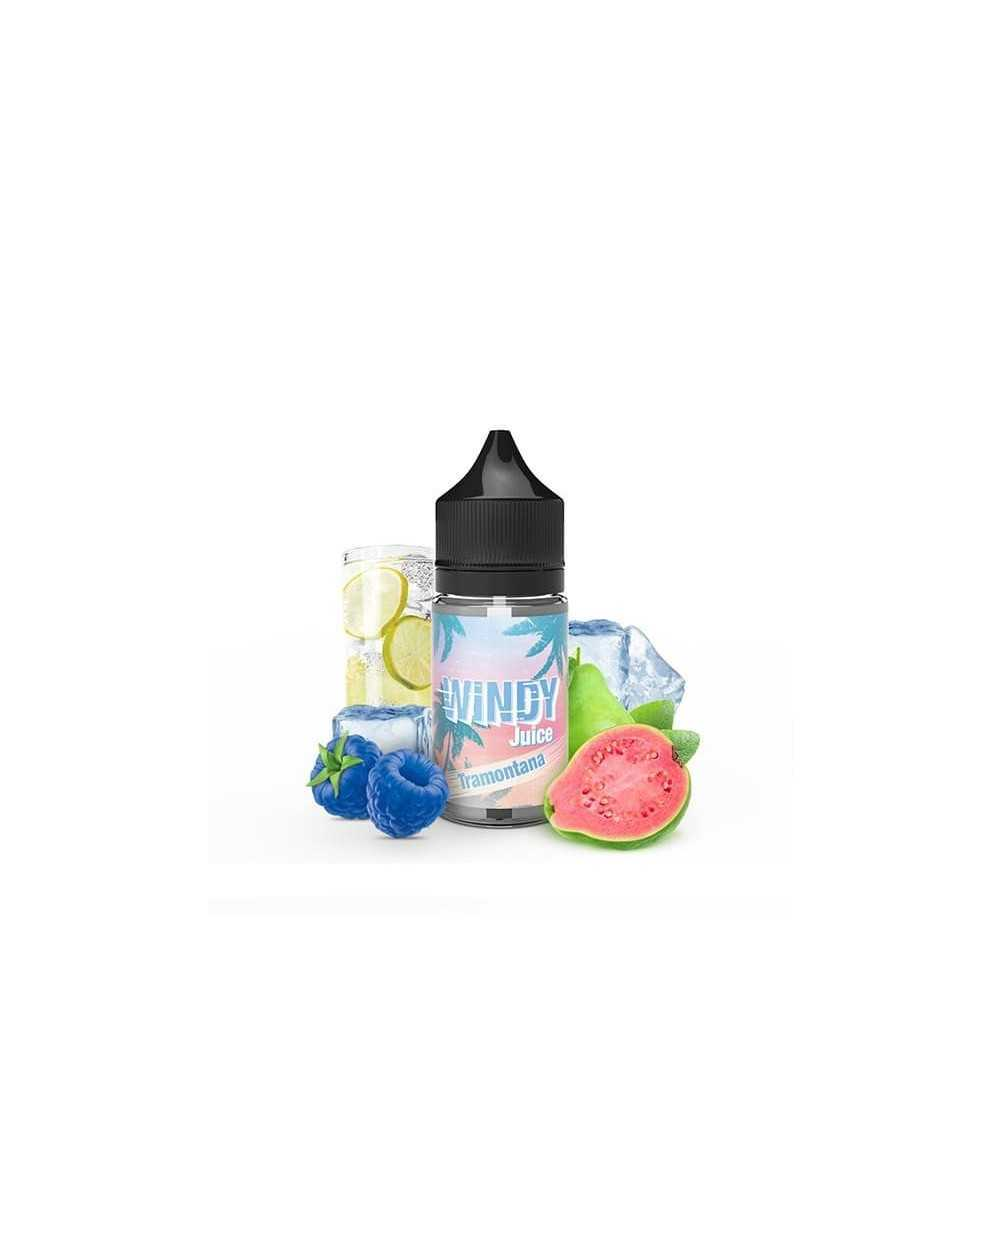 Concentrated aroma Tramontana 30ml - Windy Juice by e.Tasty-1